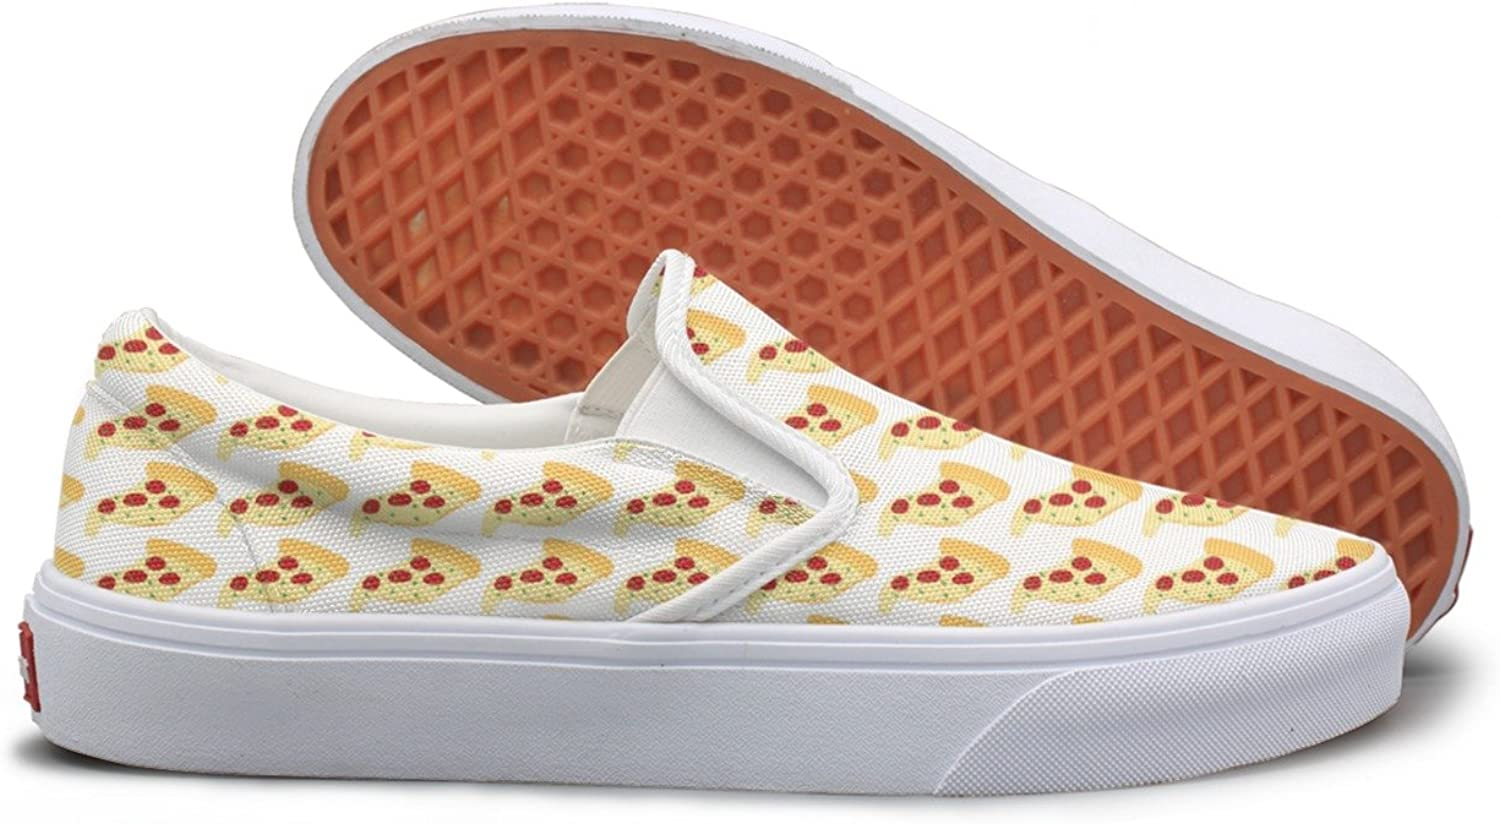 Lalige Slice Of Pizza Womens Cute Canvas Slip-on Walking shoes